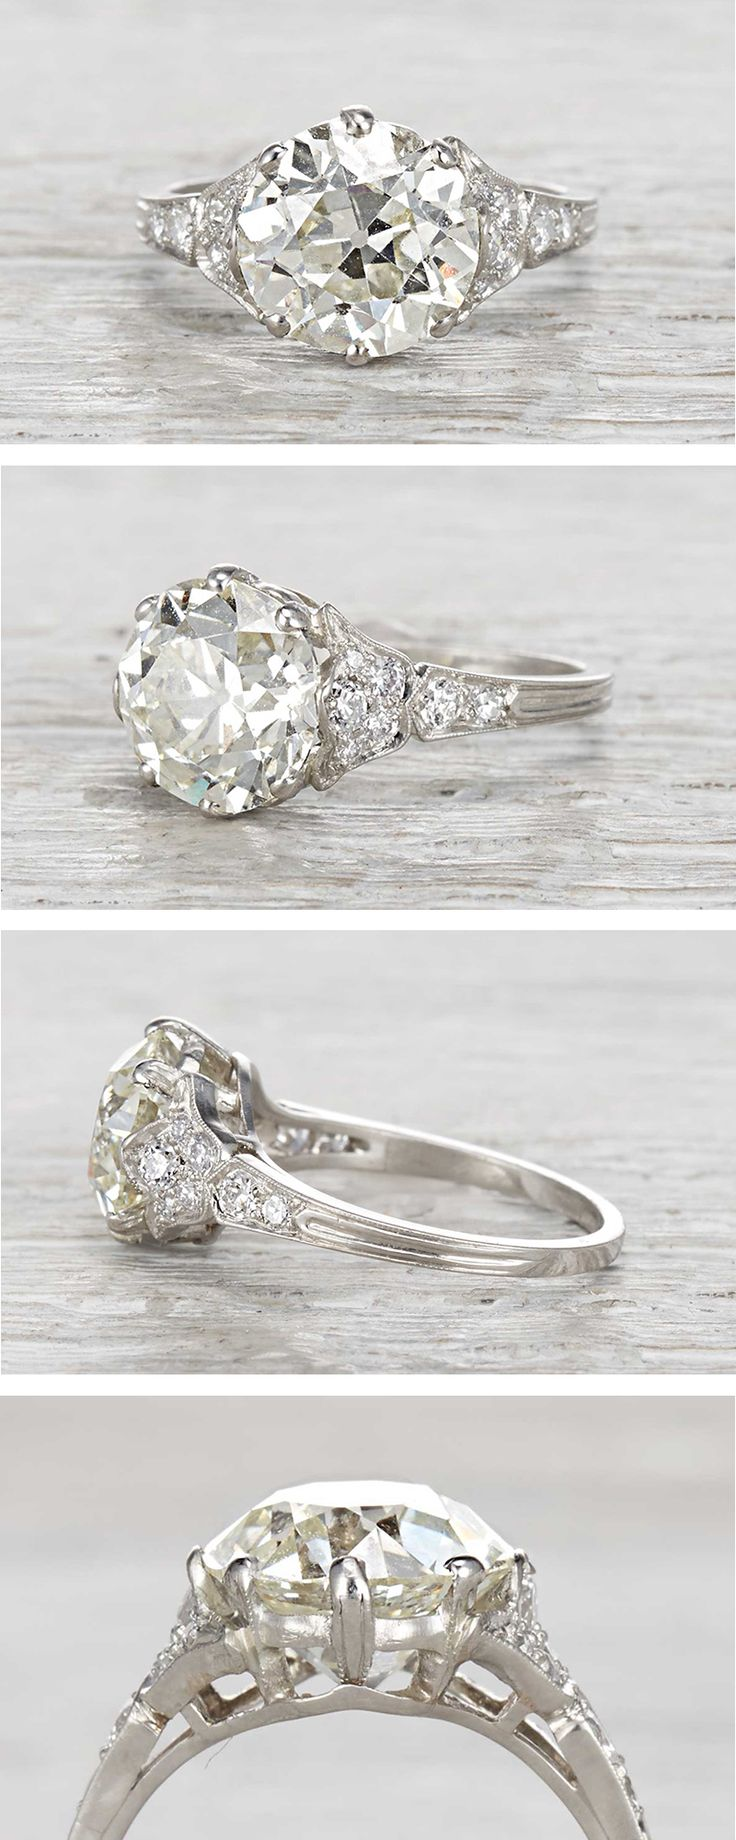 Vintage Edwardian engagement ring made in platinum and centered with a 3.93 carat GIA certified old European cut diamond with M color and VS1 clarity. Circa 1910.